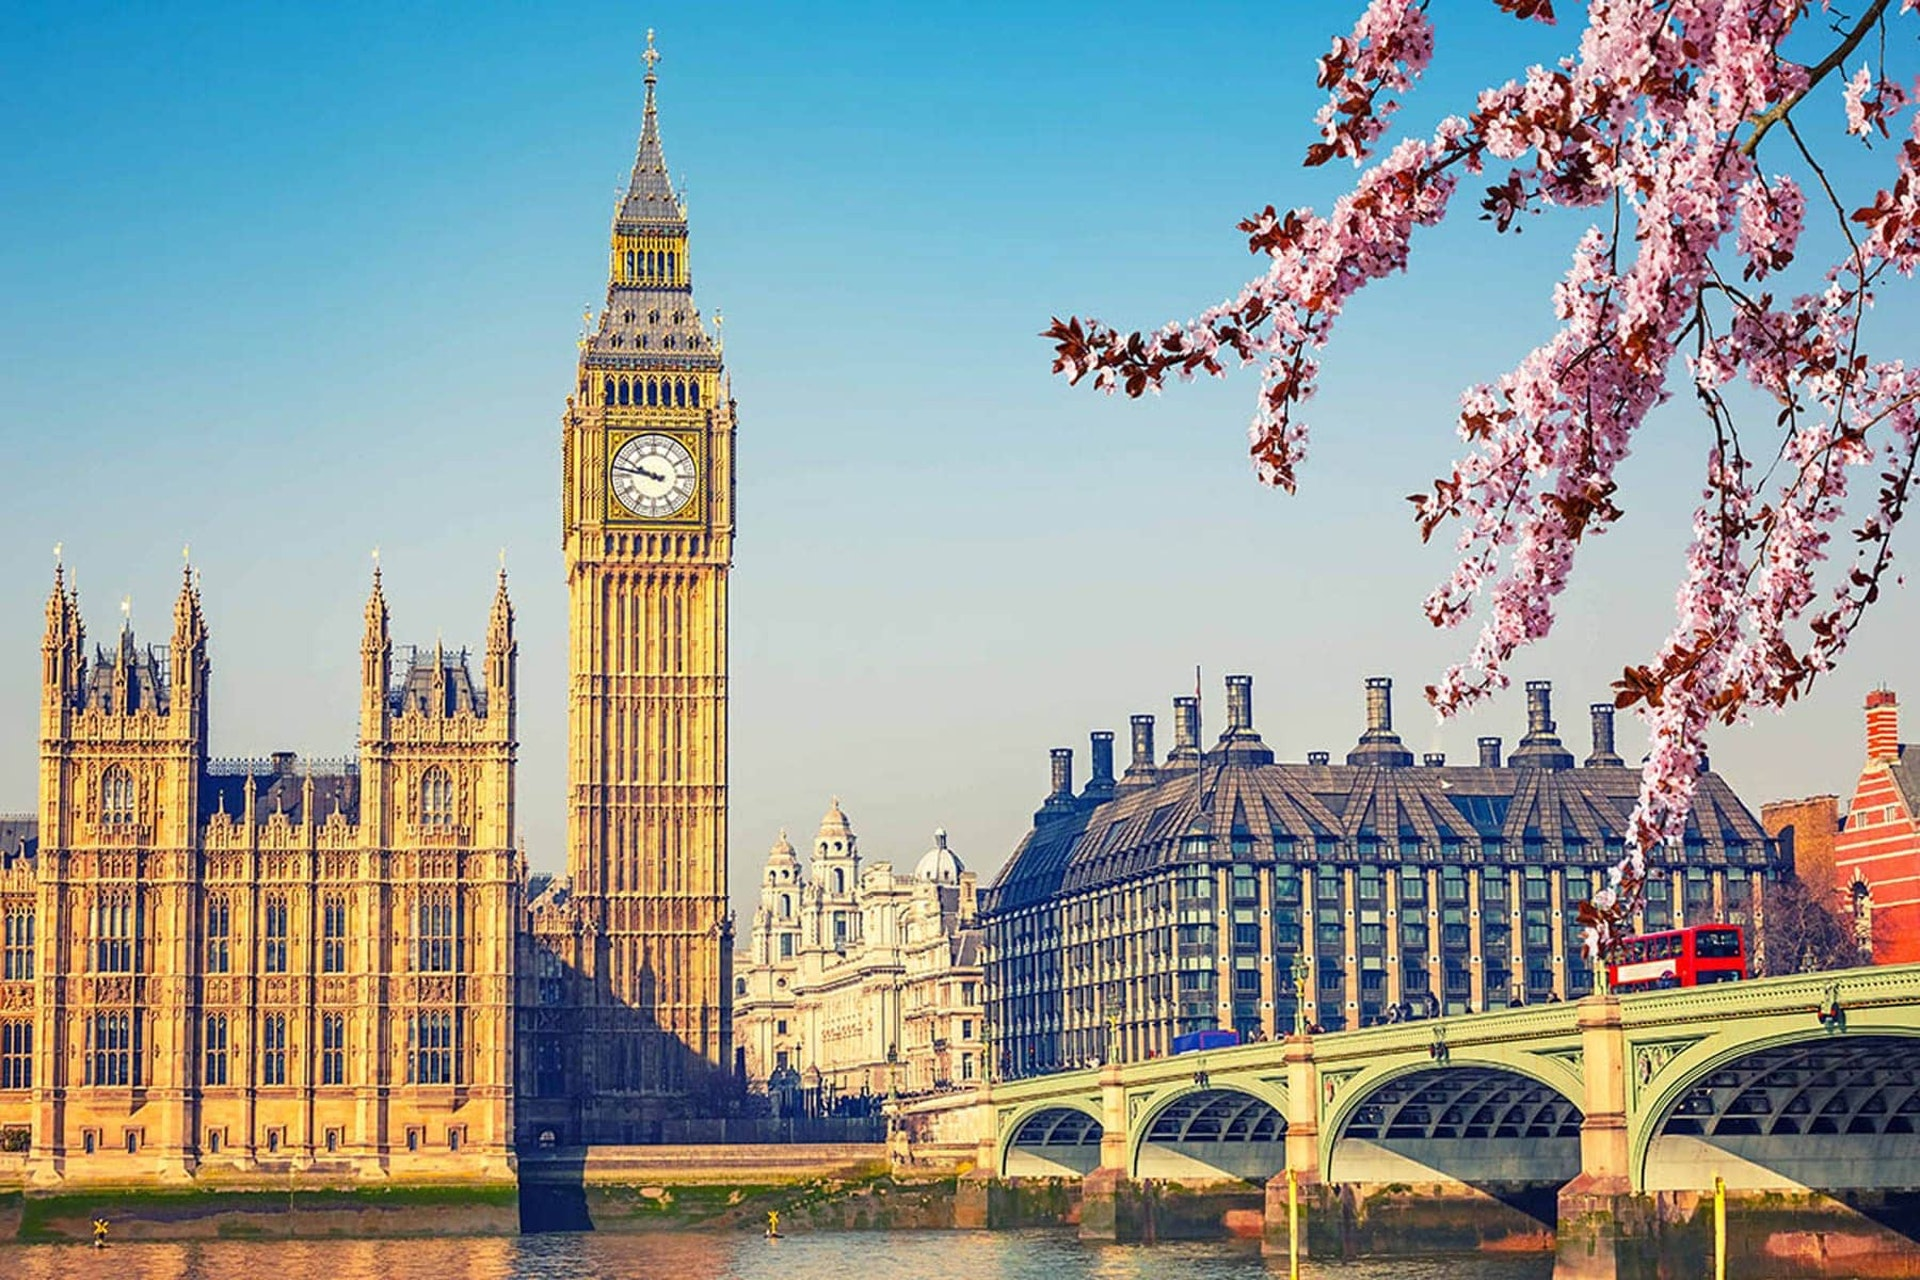 Big Ben, Houses of Parliament in London in spring